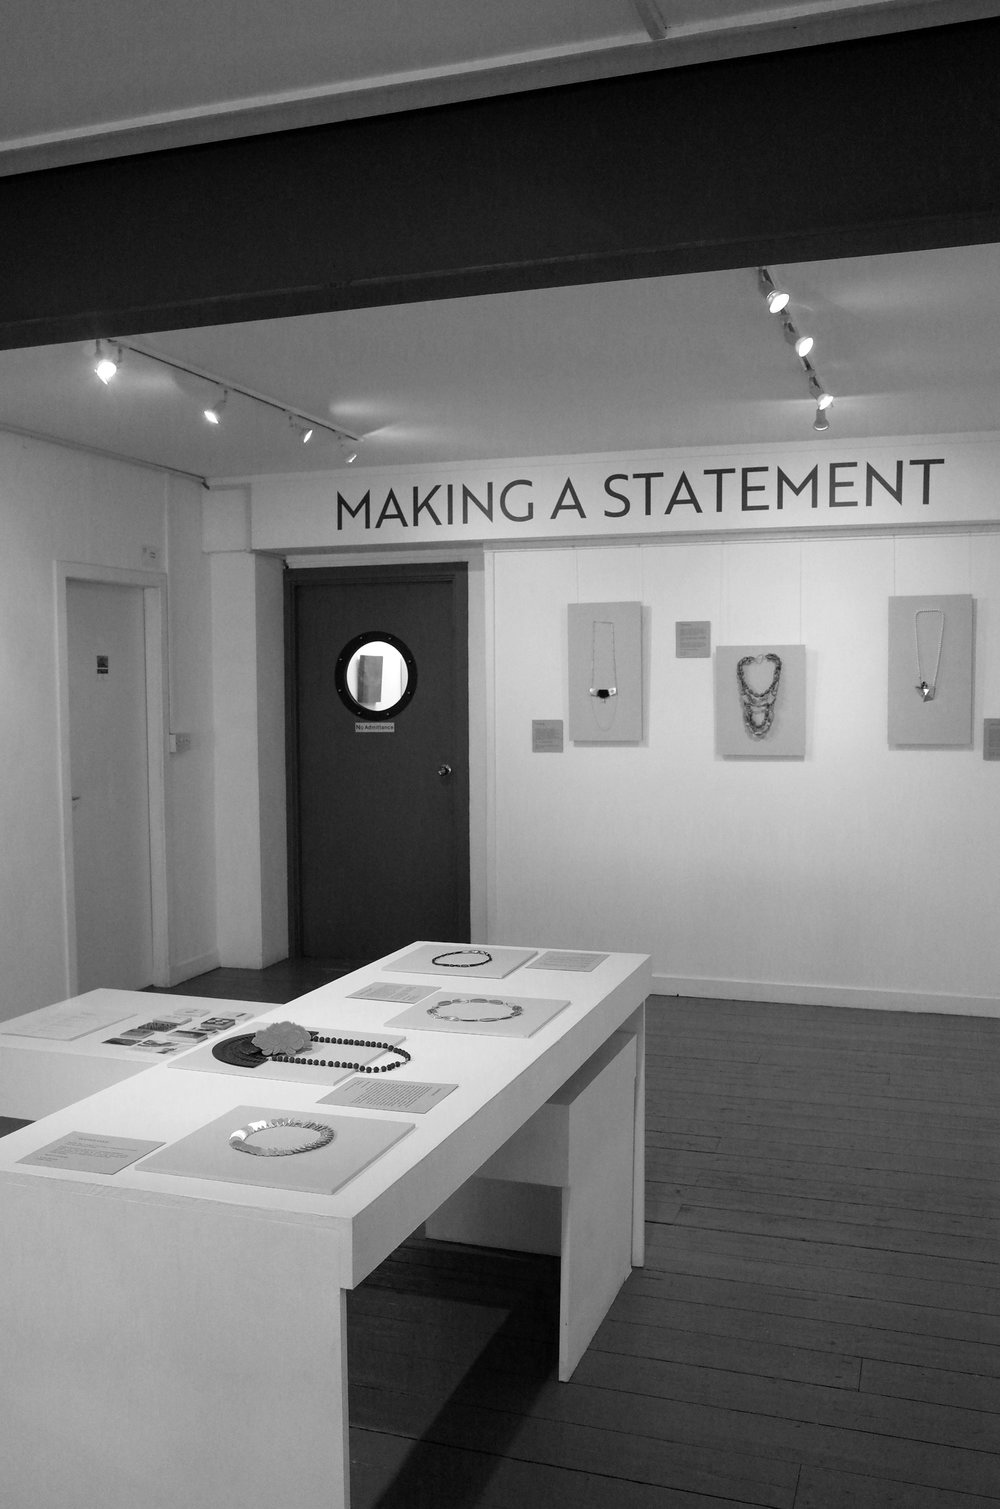 Making a Statement Exhibition